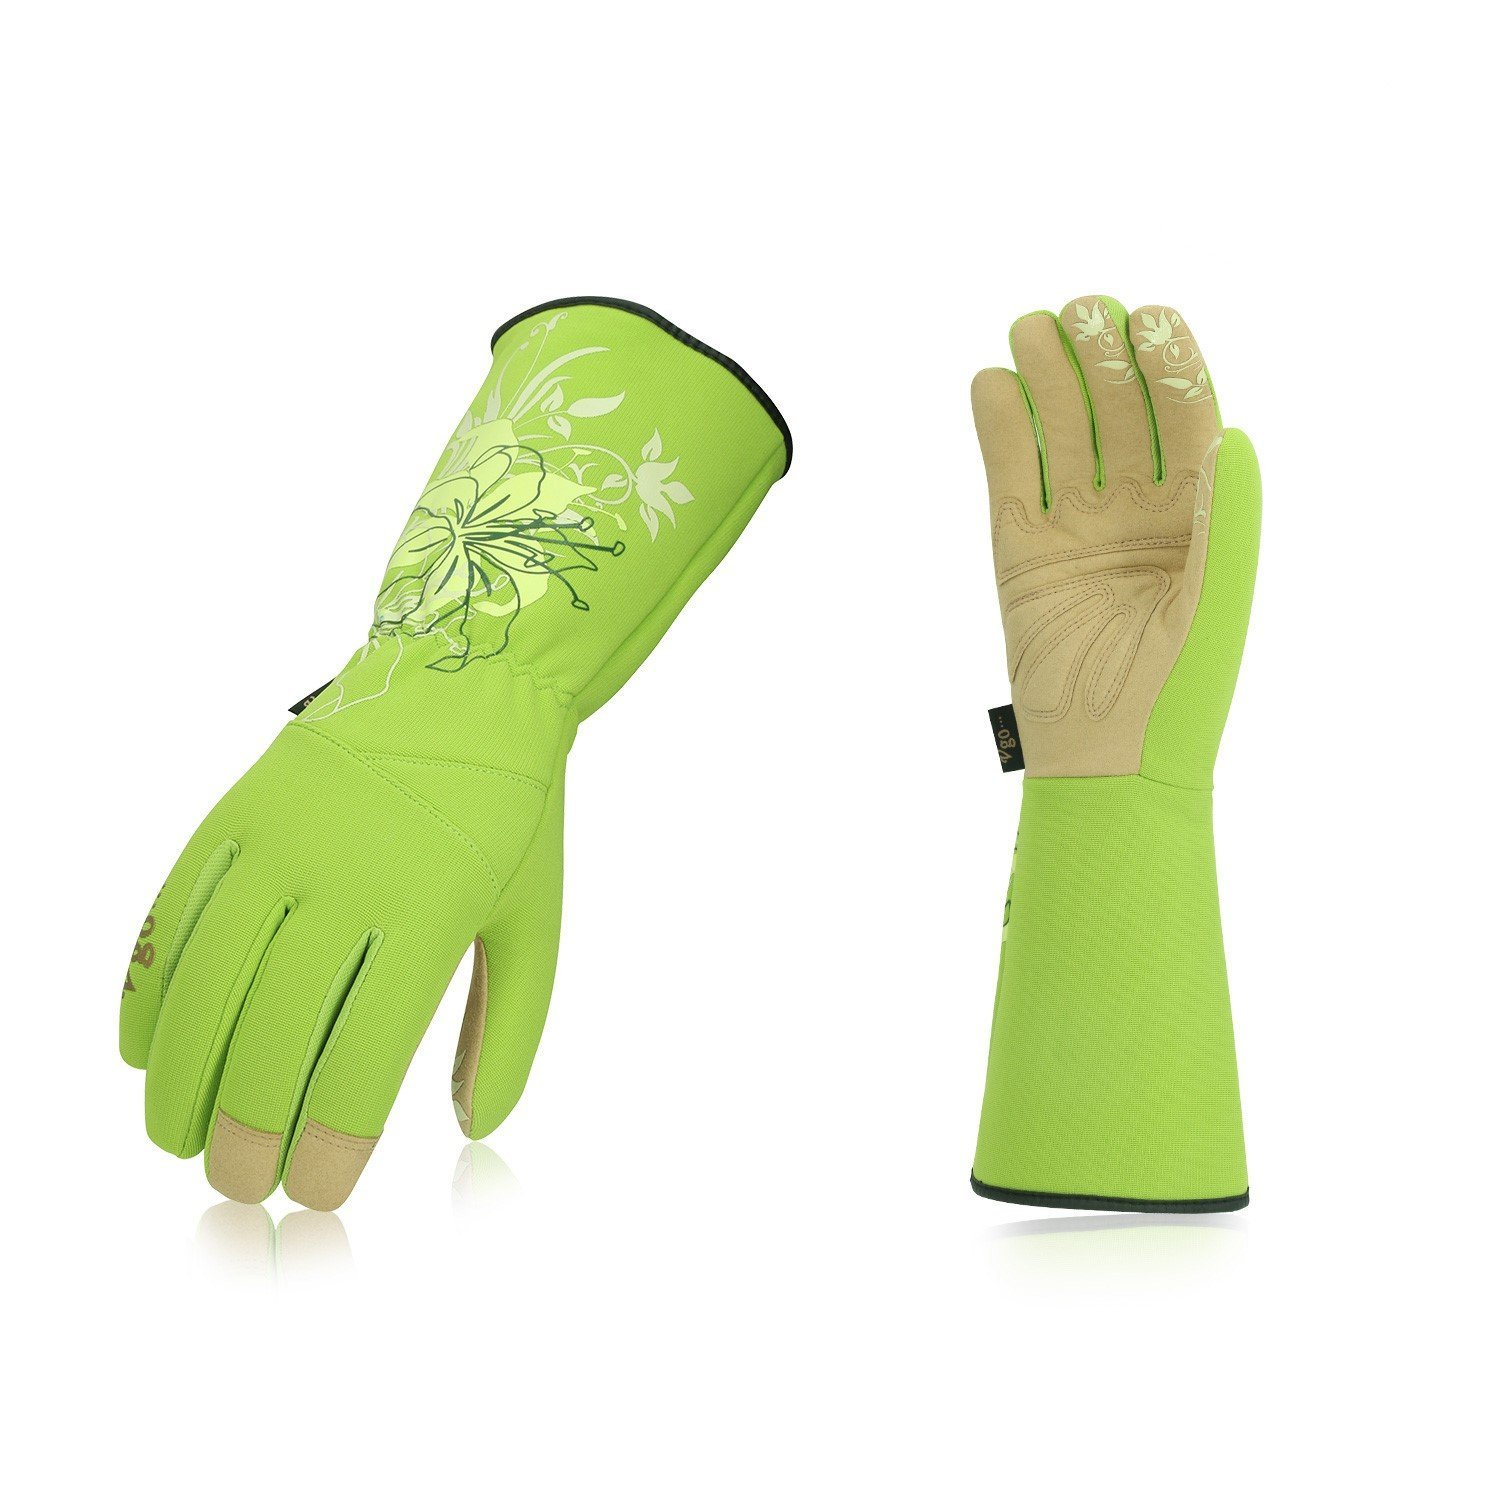 Vgo Ladies' Synthetic Leather Long Cuff Rose Garden Gloves(1Pair,Size L,Green,SL7445) by Vgo...